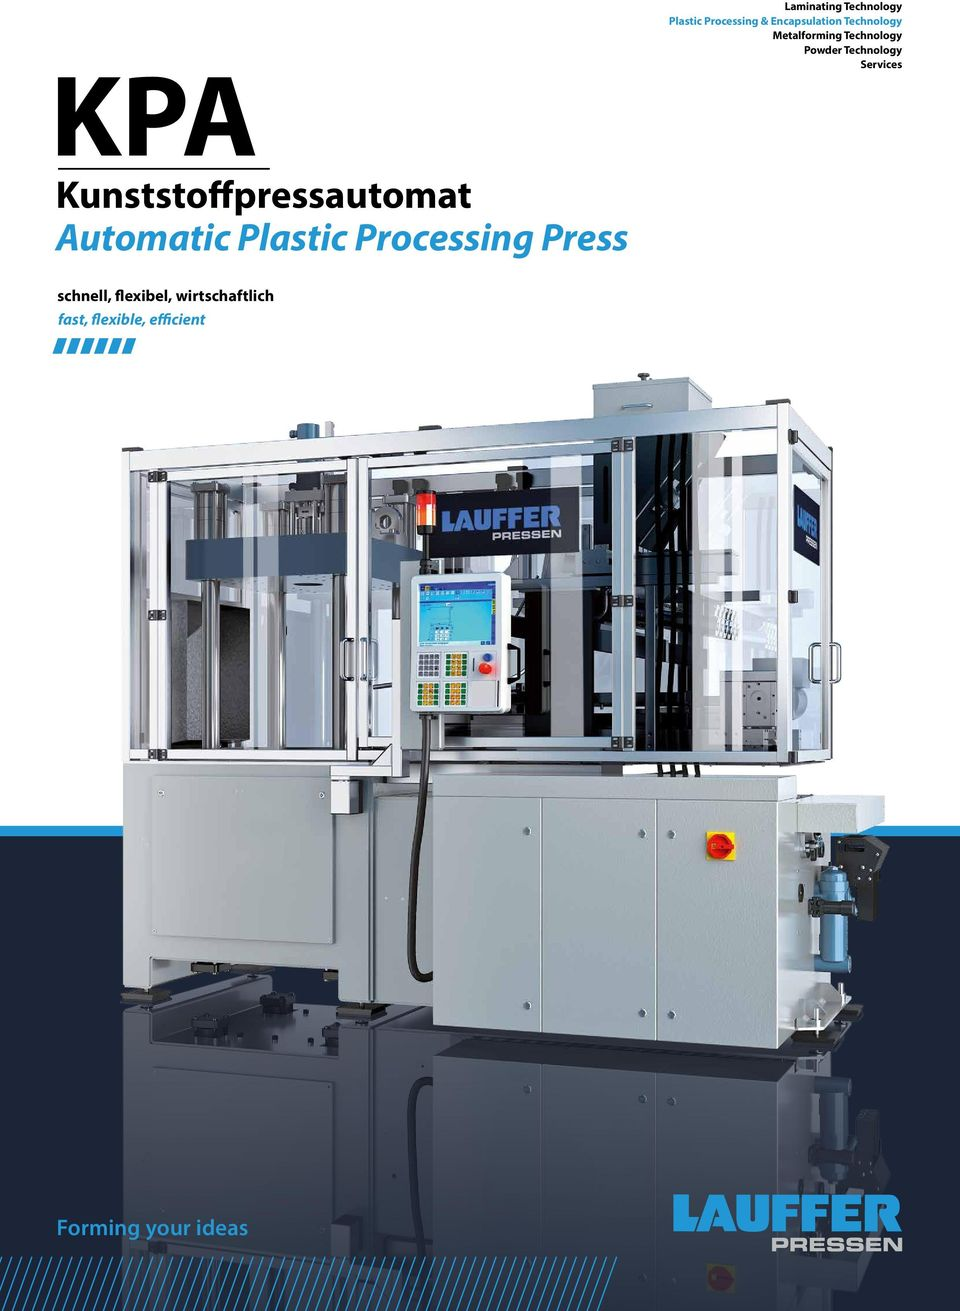 Kunststoffpressautomat Automatic Plastic Processing Press